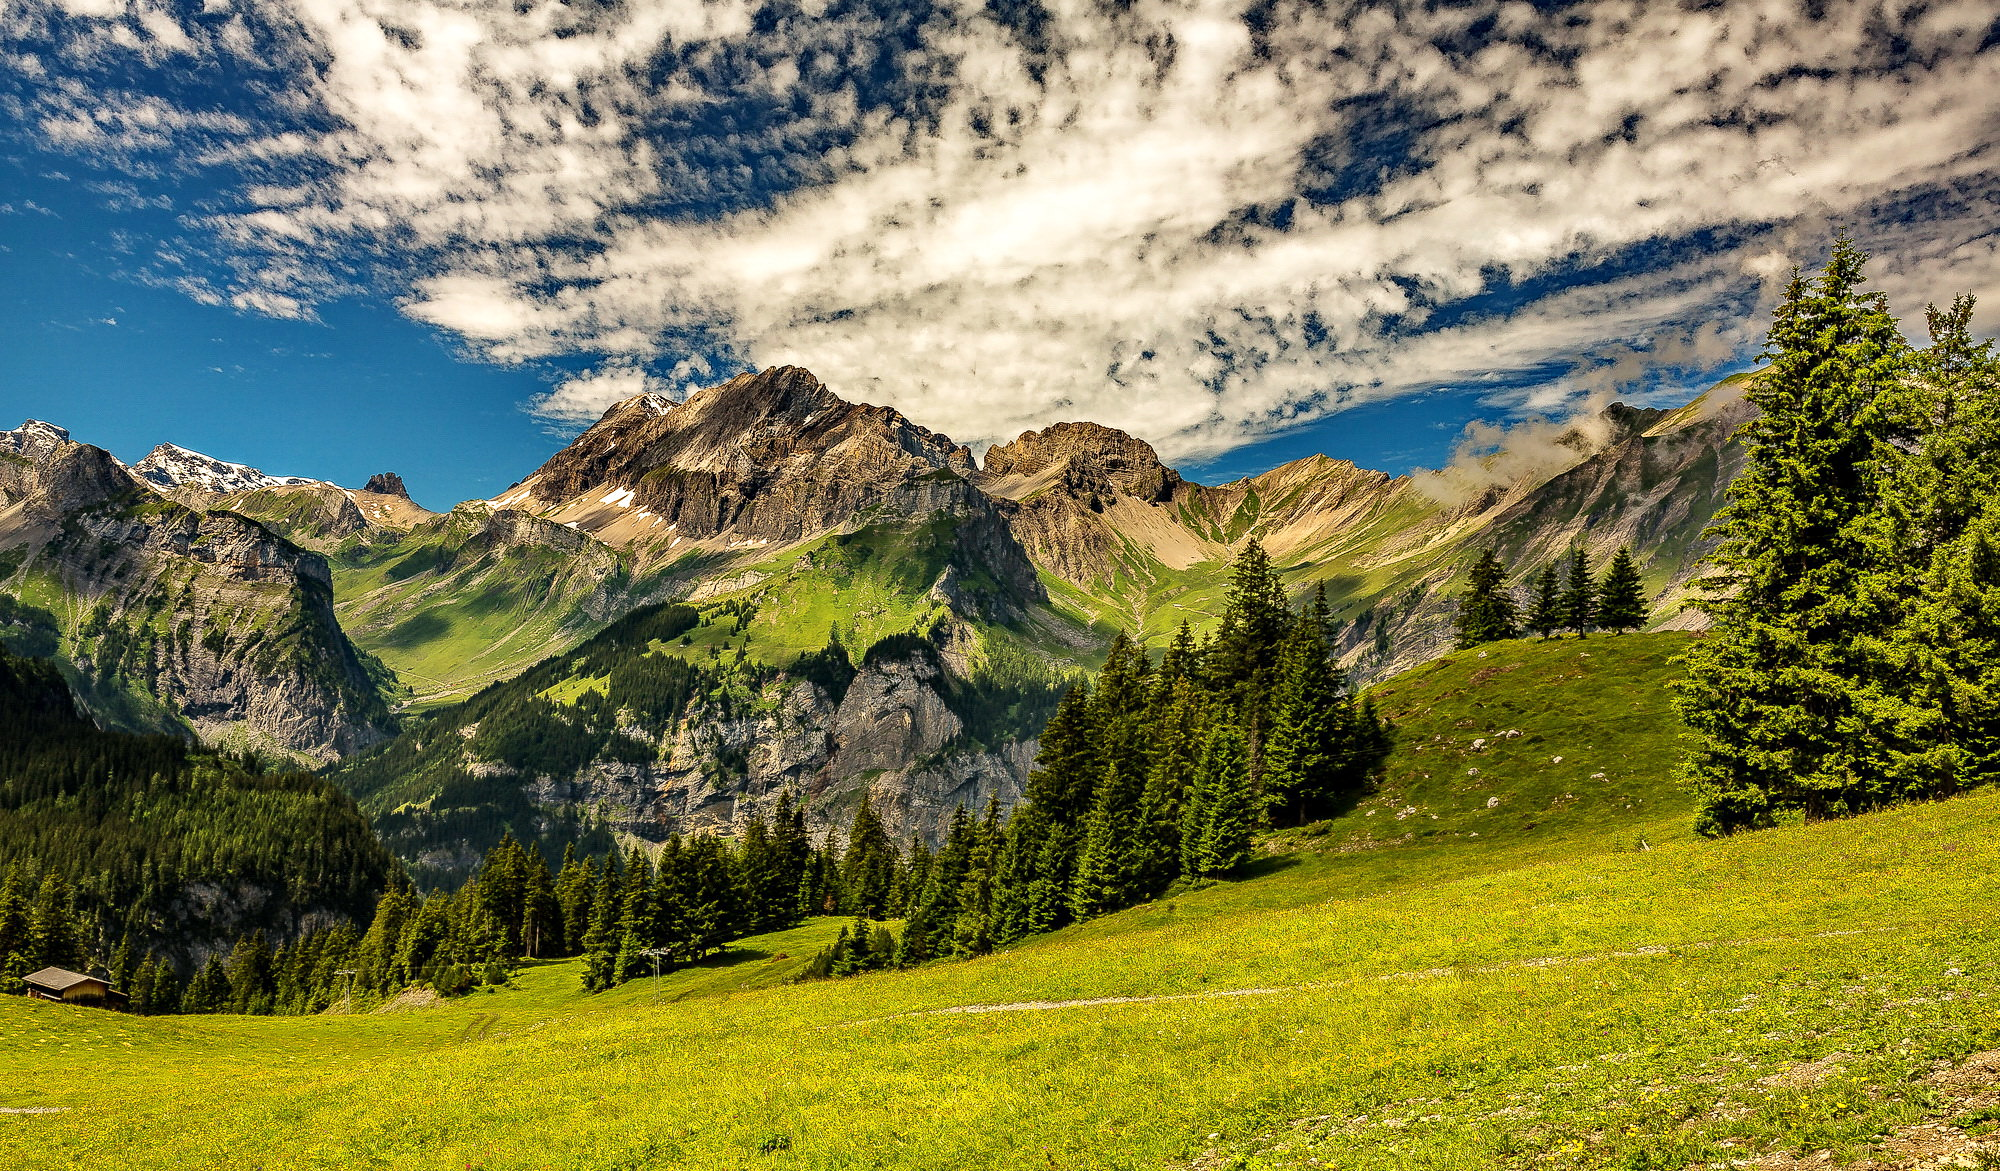 The Alps 2014-Switzerland-Kandersteg 4